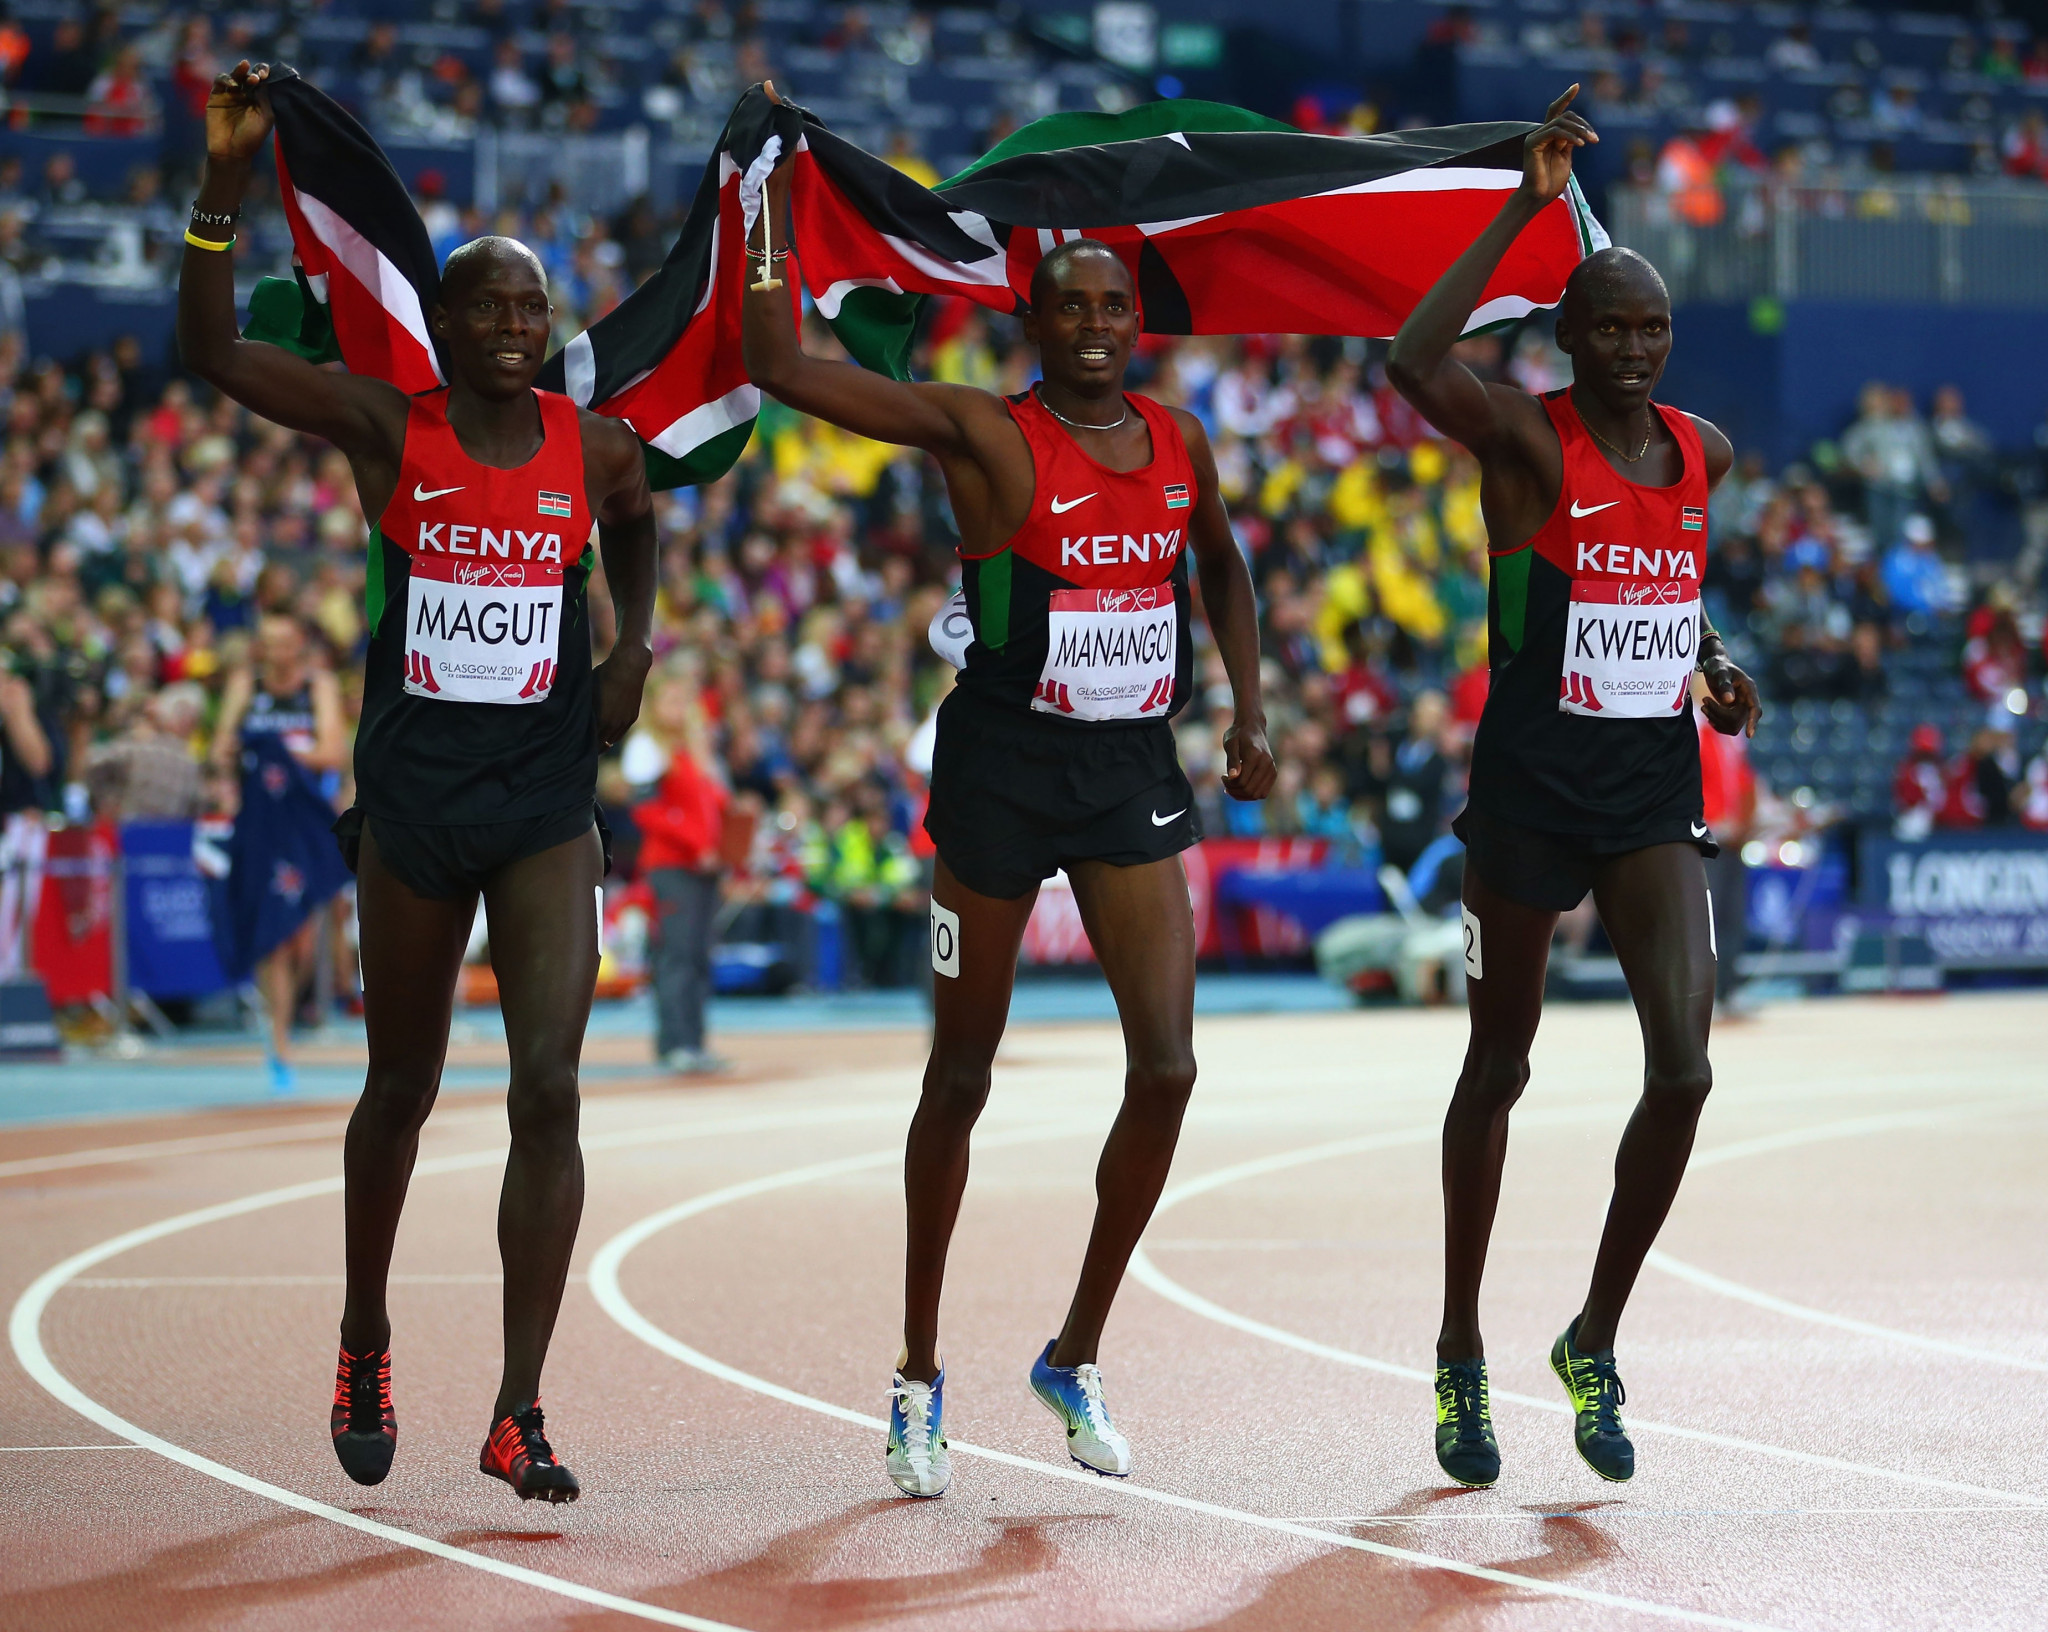 Kenya announce arrival of Gold Coast 2018 kit